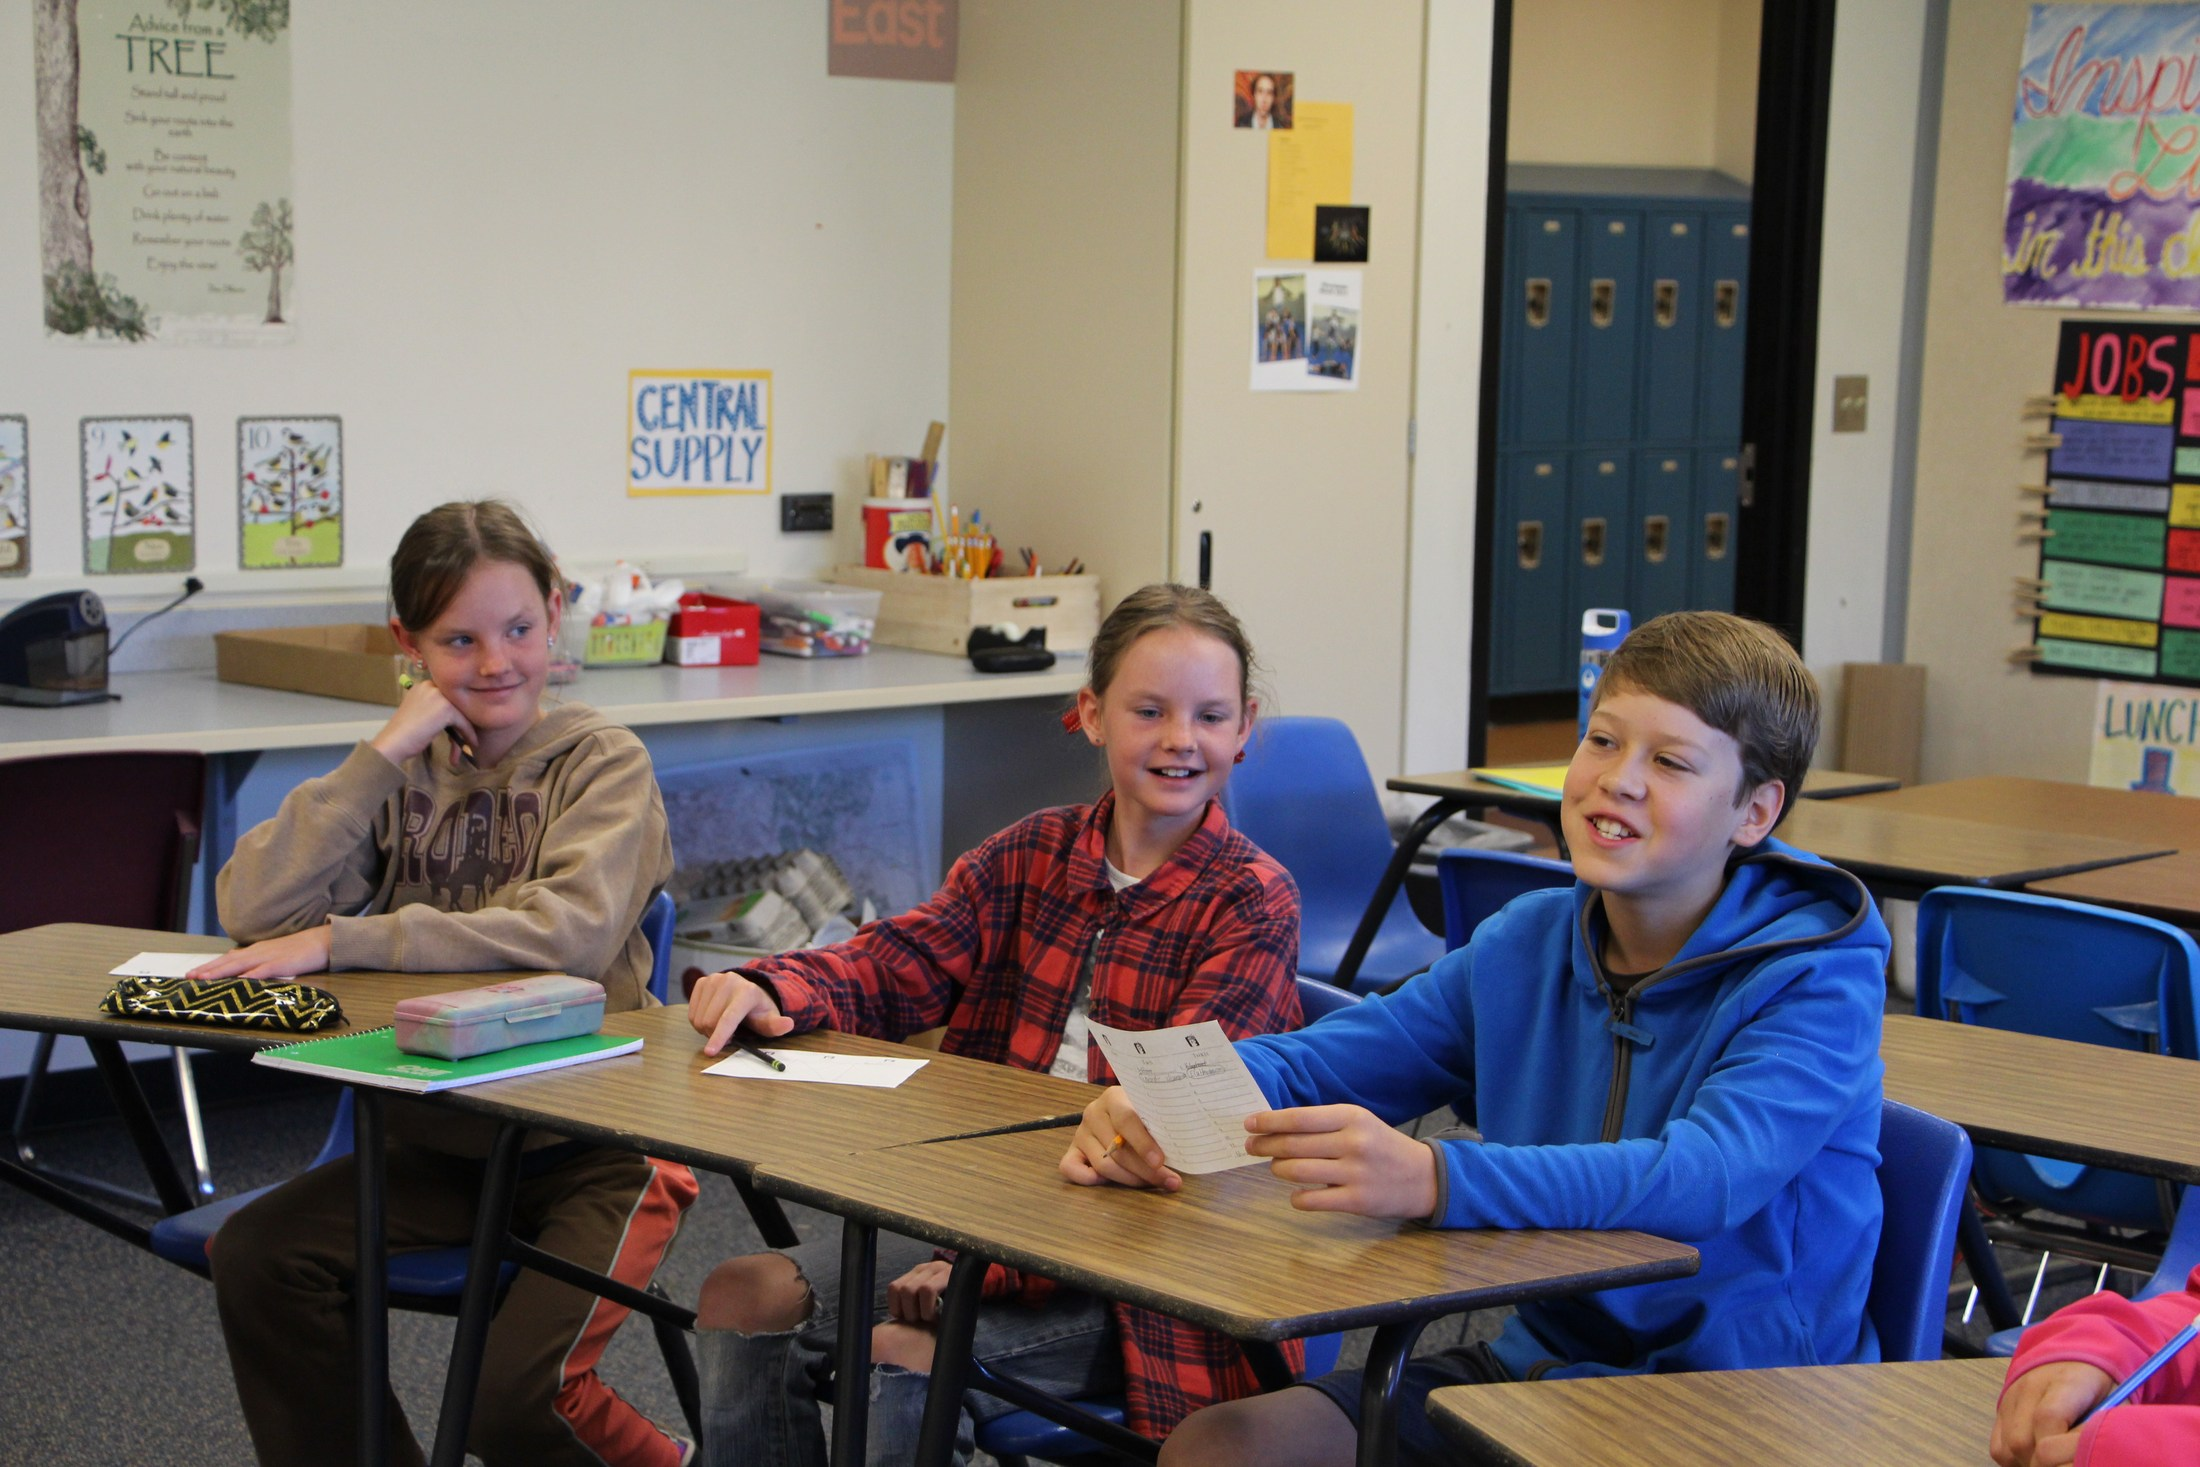 Students participate in a learning game at Shared School.